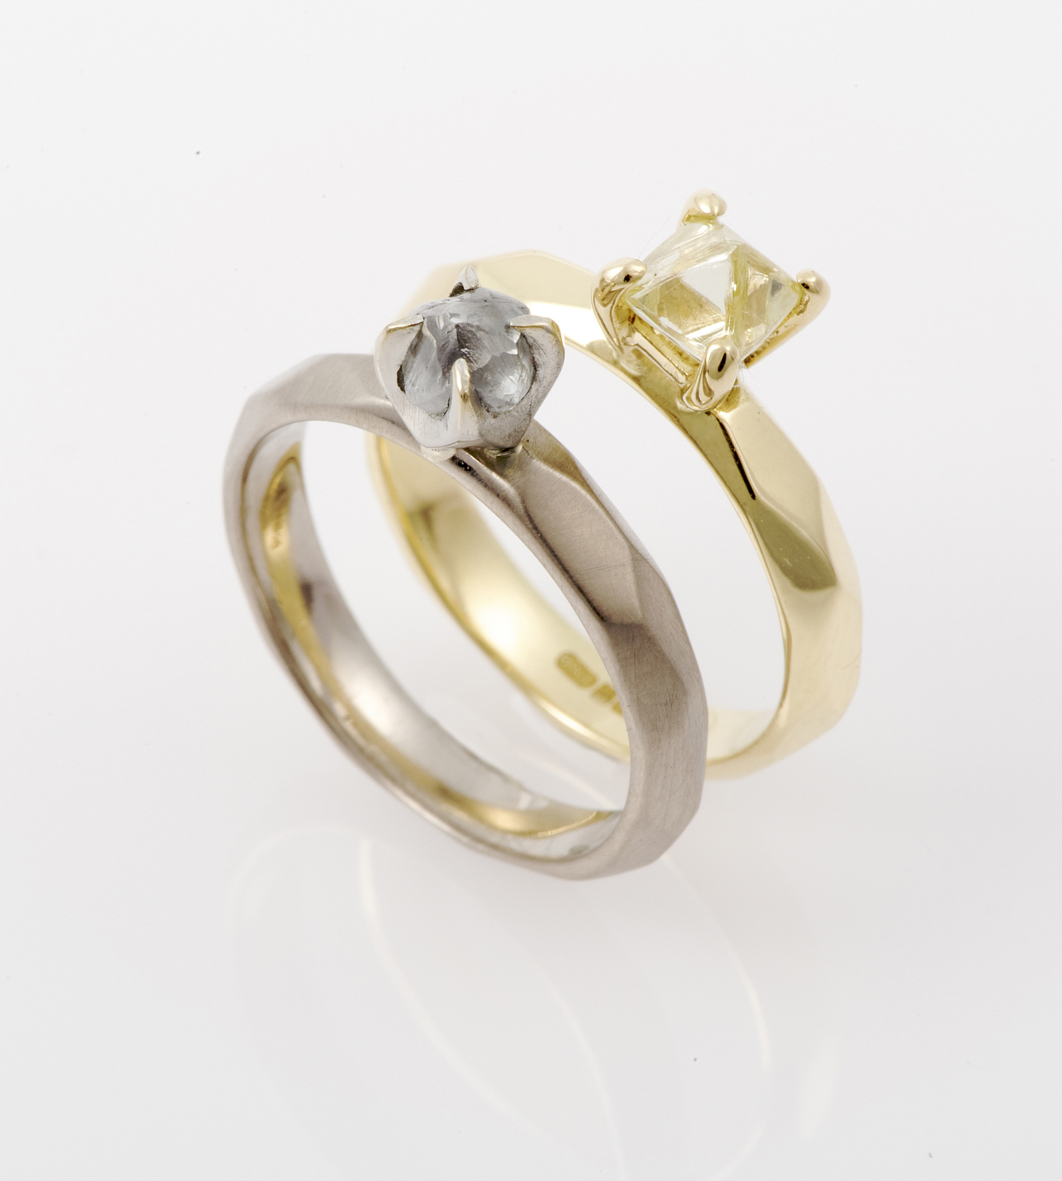 rings o gold sarah at halo diamond cut rose and web in burst edit diamonds rough white the raw jewelry wedding